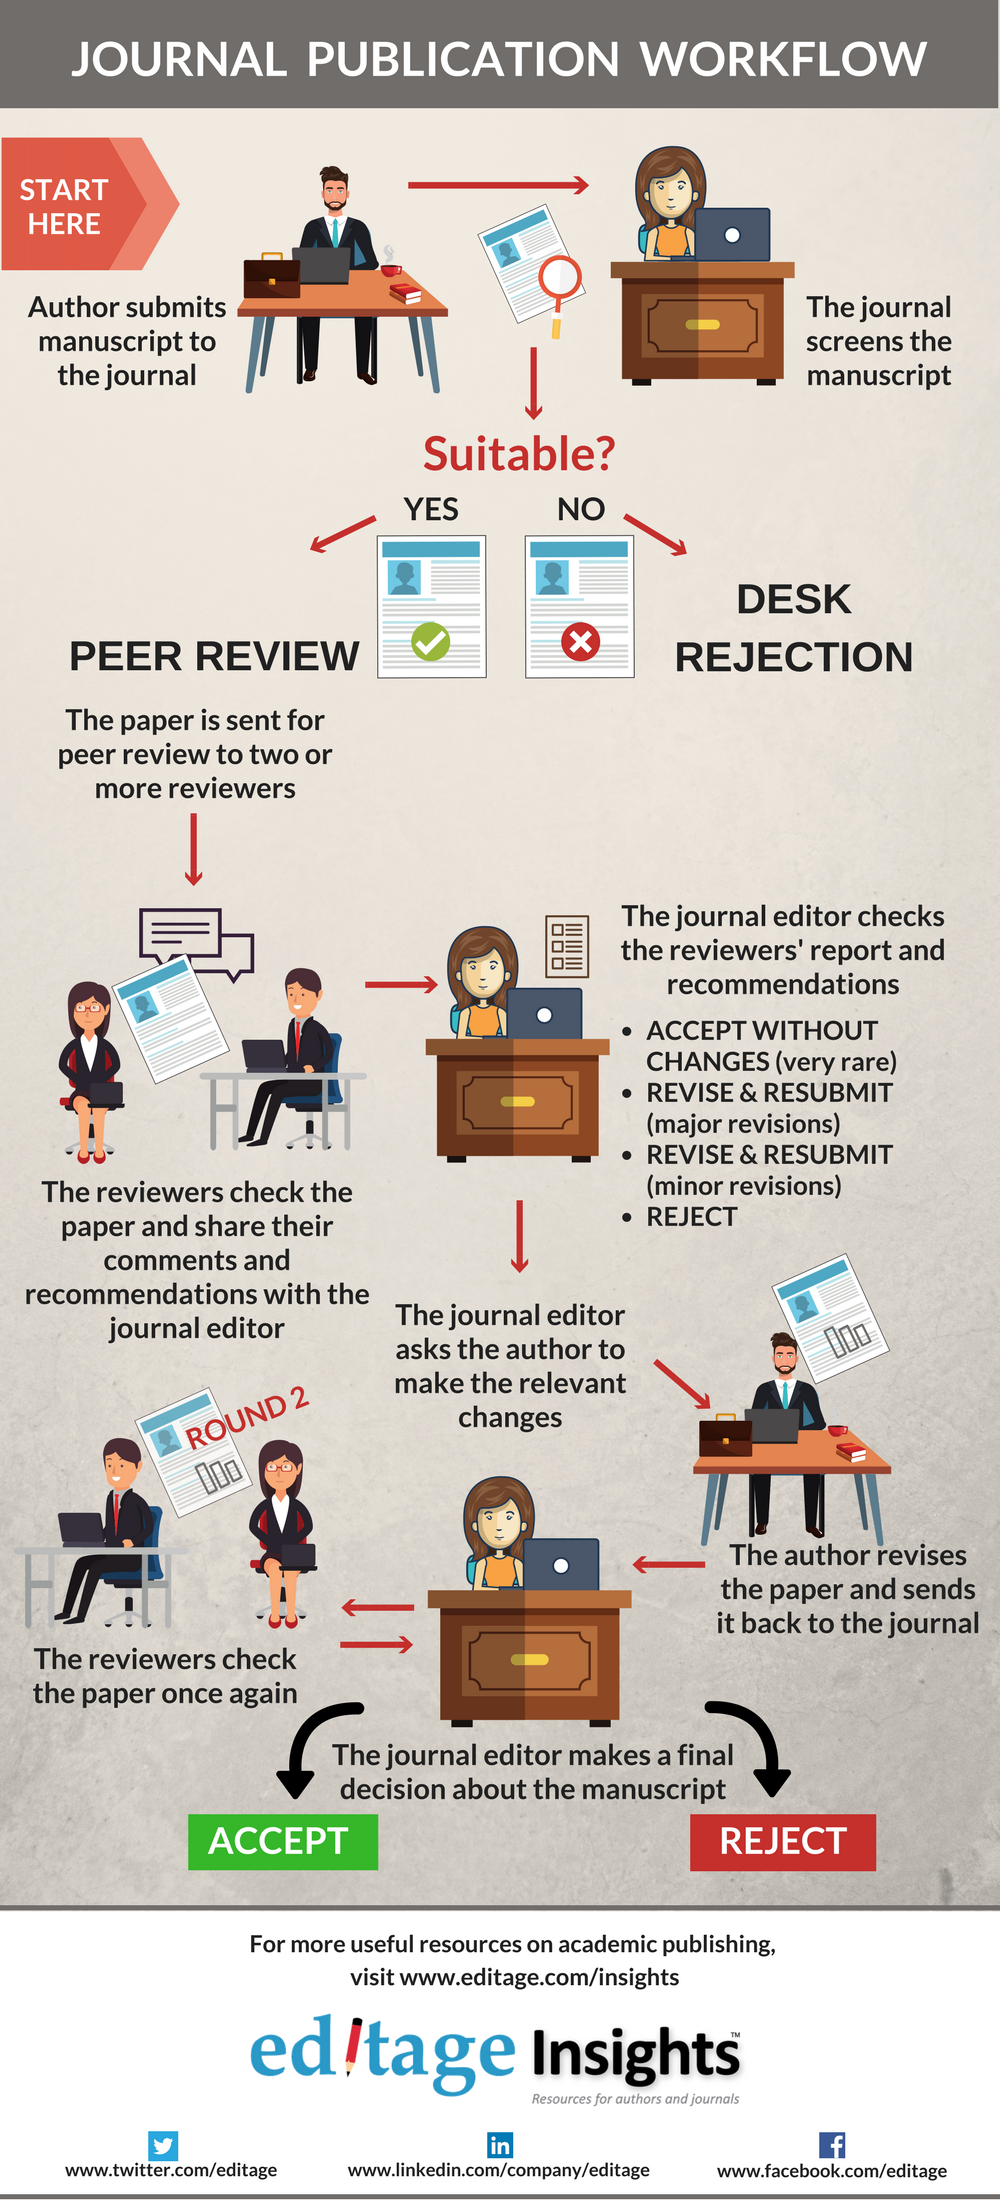 002 Journal Publishing Workflow Journals To Publish Researchs Beautiful Research Papers International Paper In India List Of Best Full